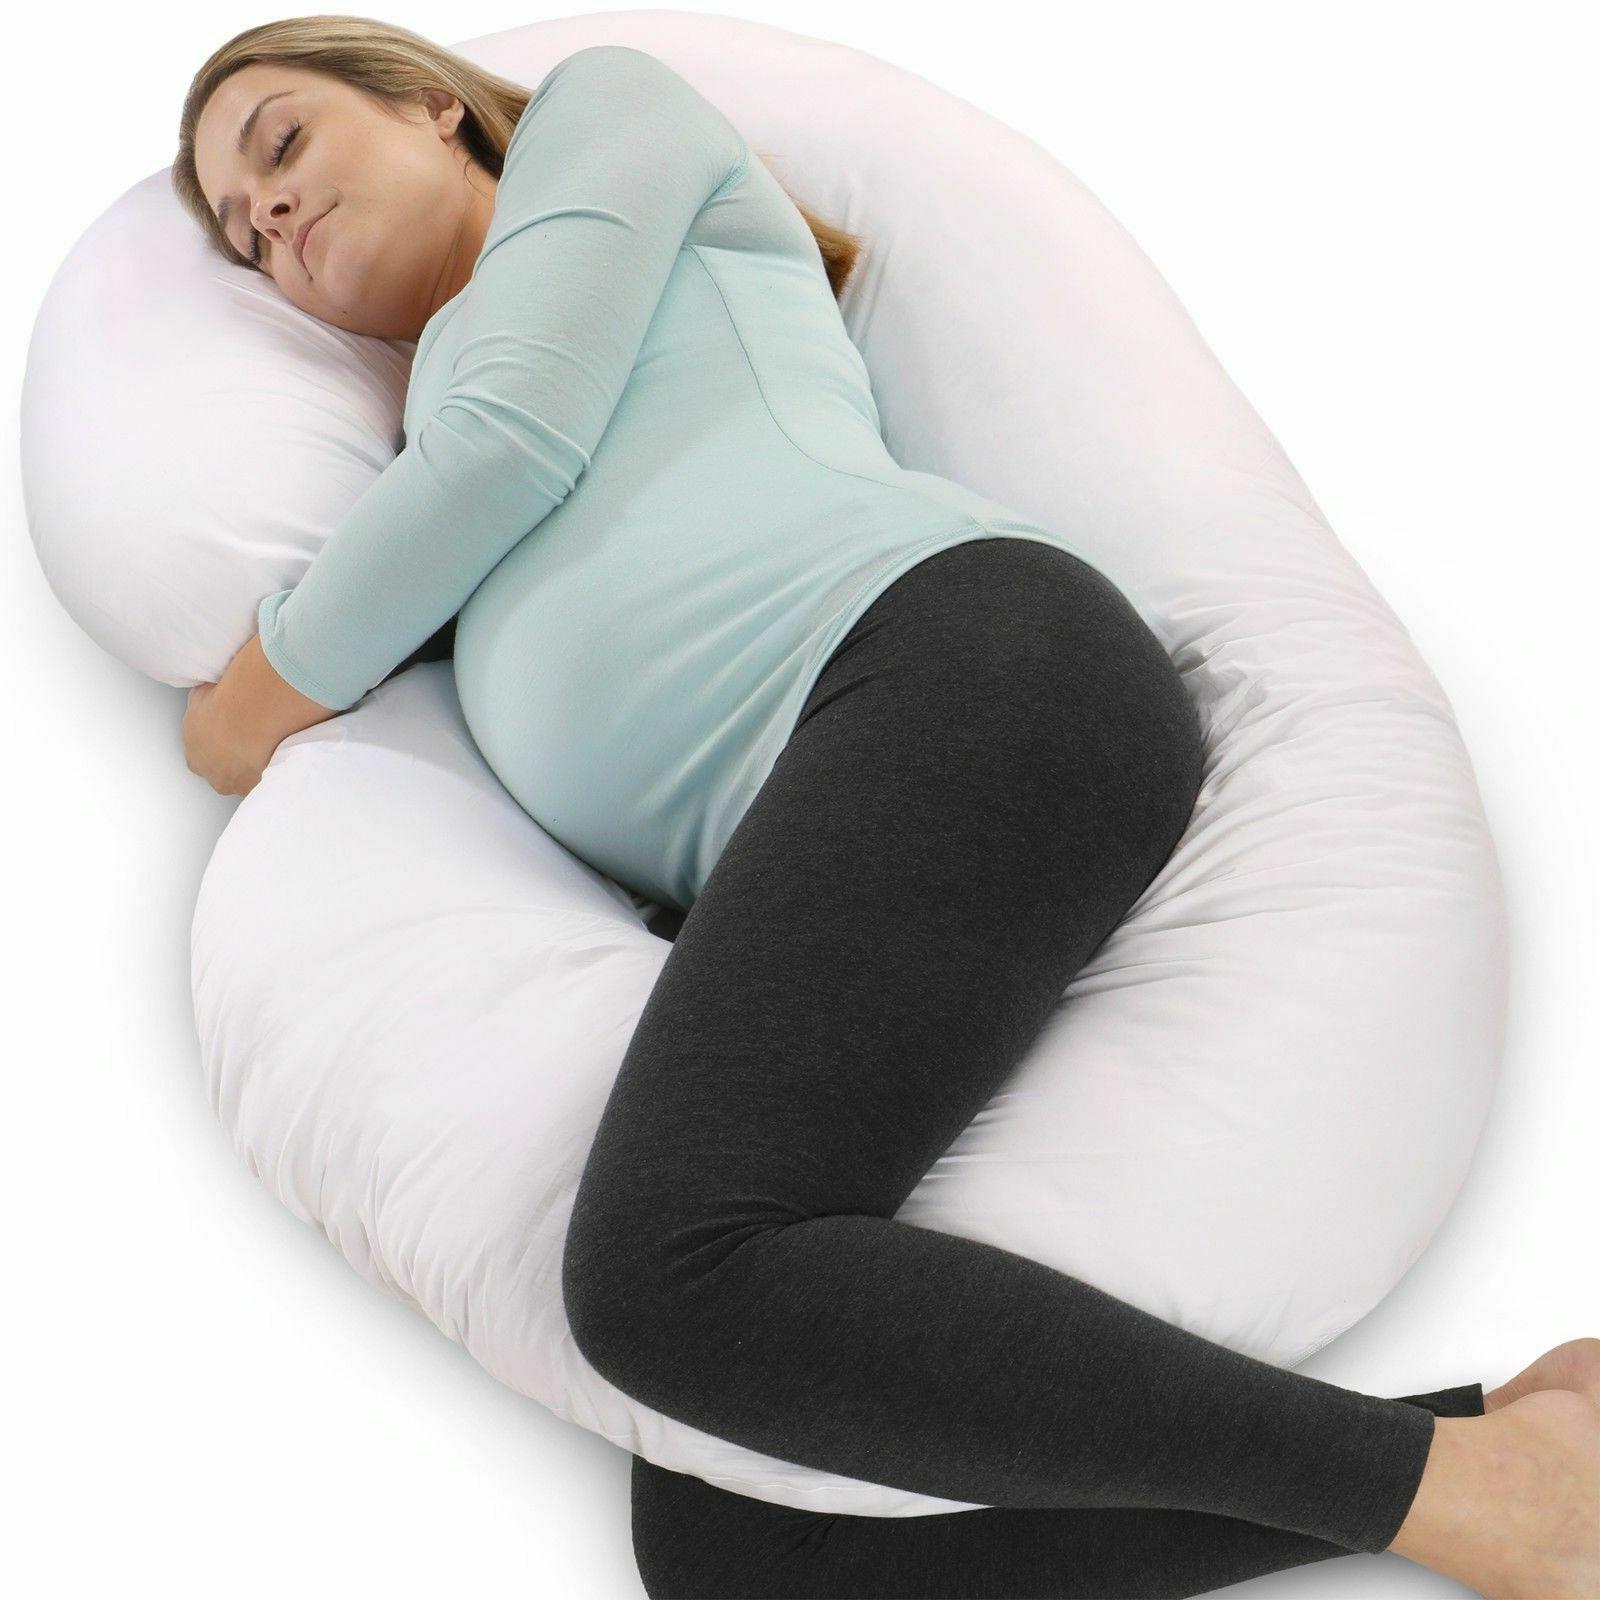 PharMeDoc Full Body Pregnancy Pillow - Maternity Pillow for